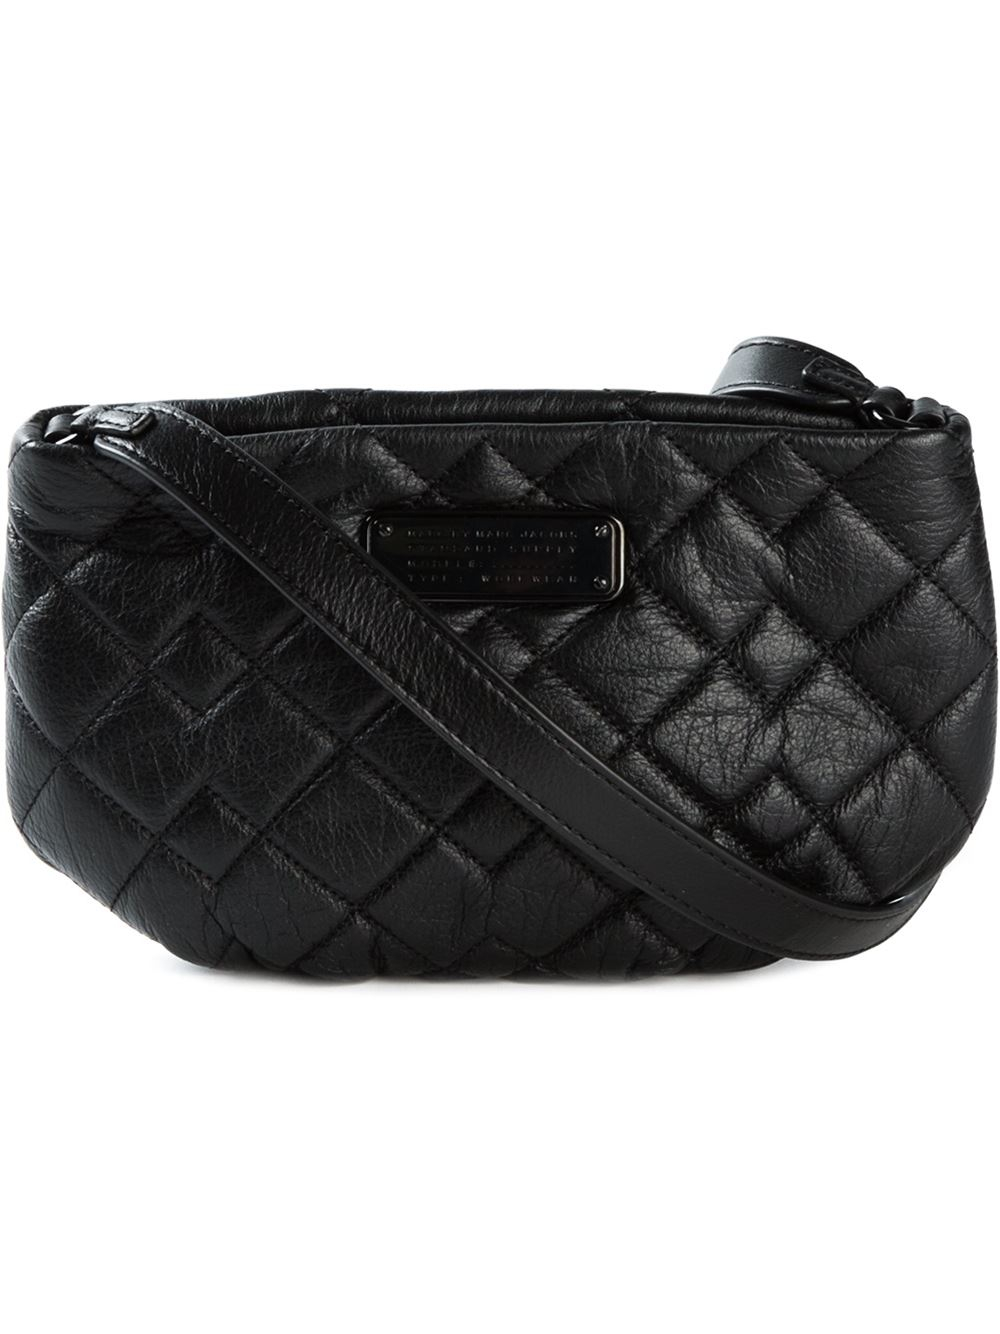 ac86f31e82b8 Lyst - Marc By Marc Jacobs New Q Quilted Percy Leather Cross-Body ...